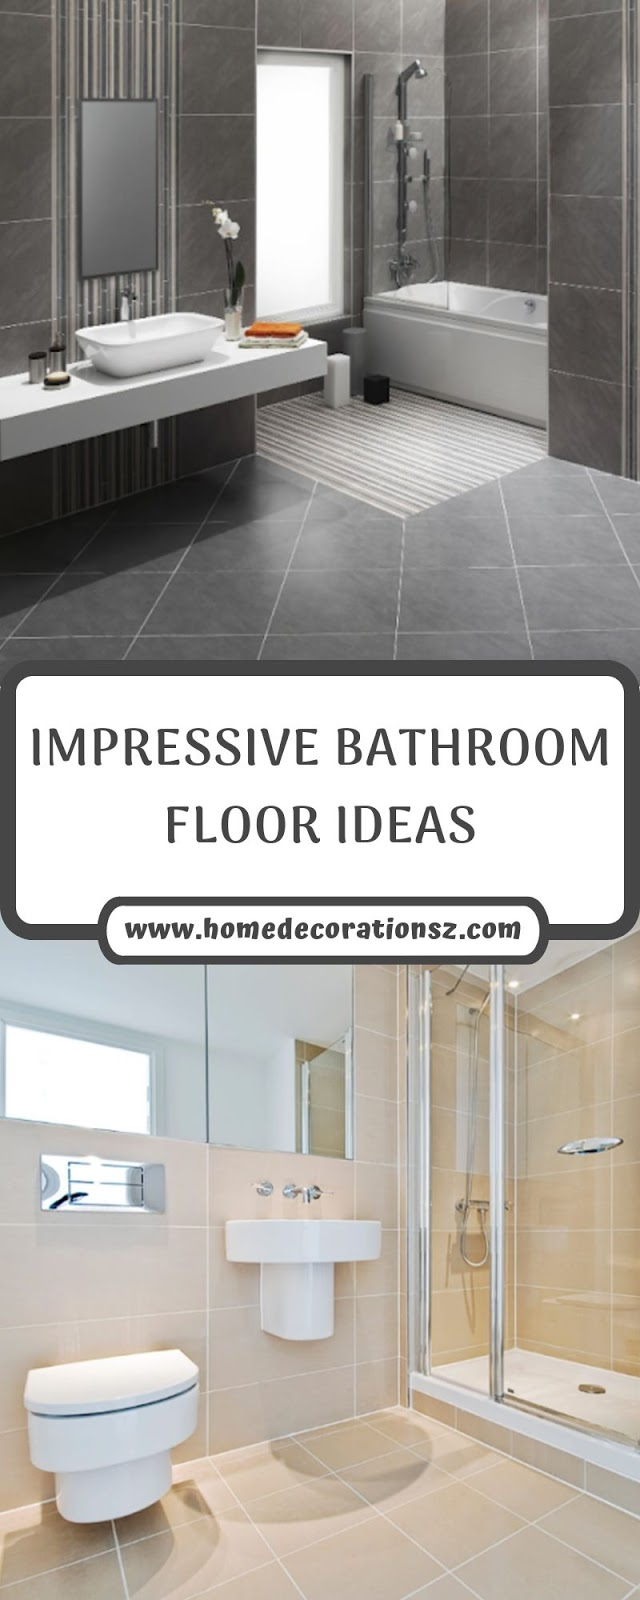 IMPRESSIVE BATHROOM FLOOR IDEAS